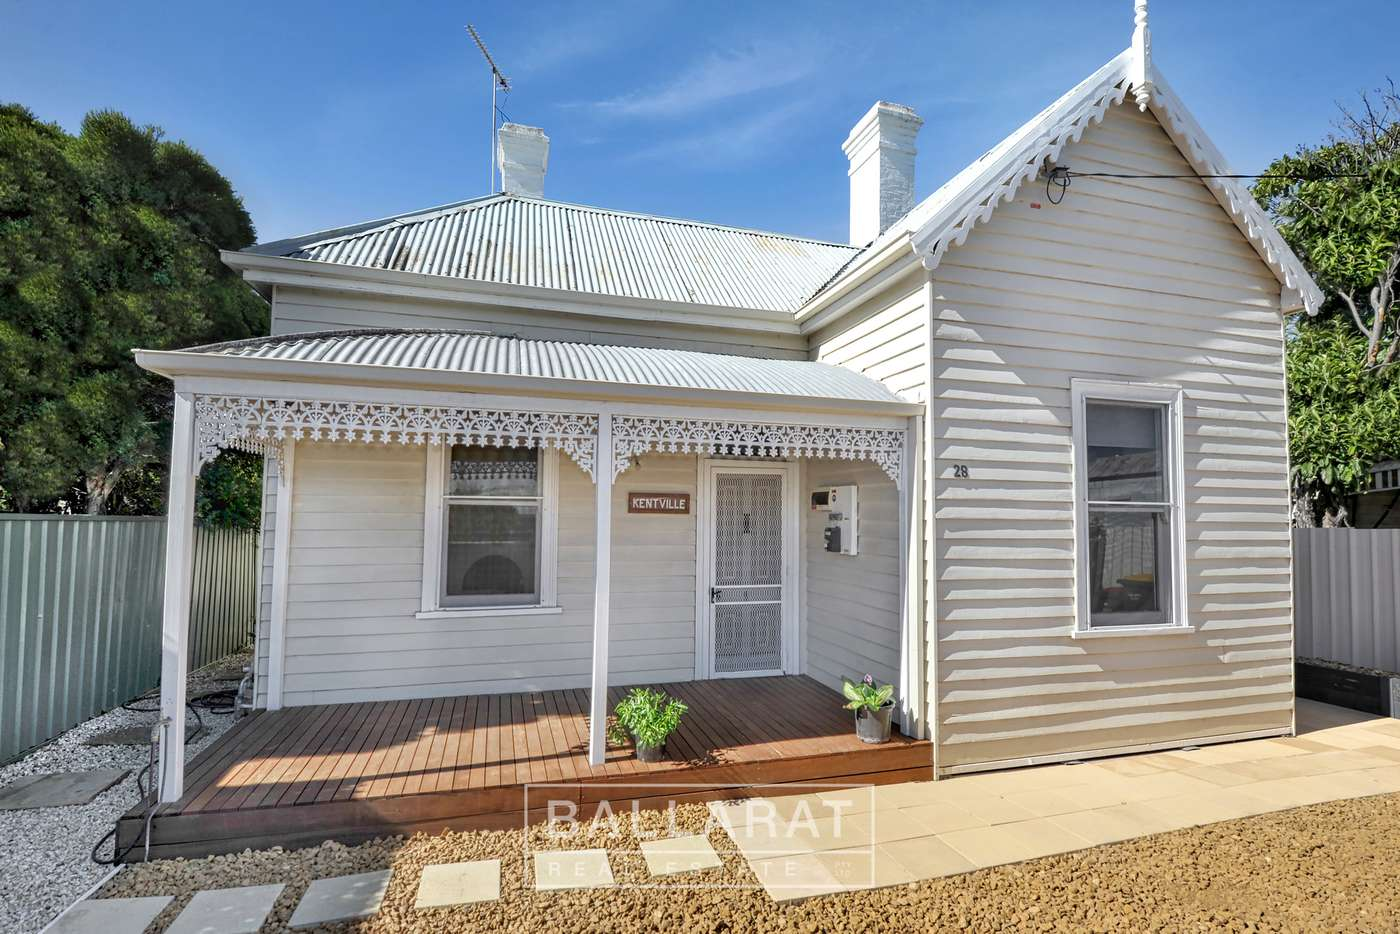 Main view of Homely house listing, 28 Inkerman Street, Maryborough VIC 3465